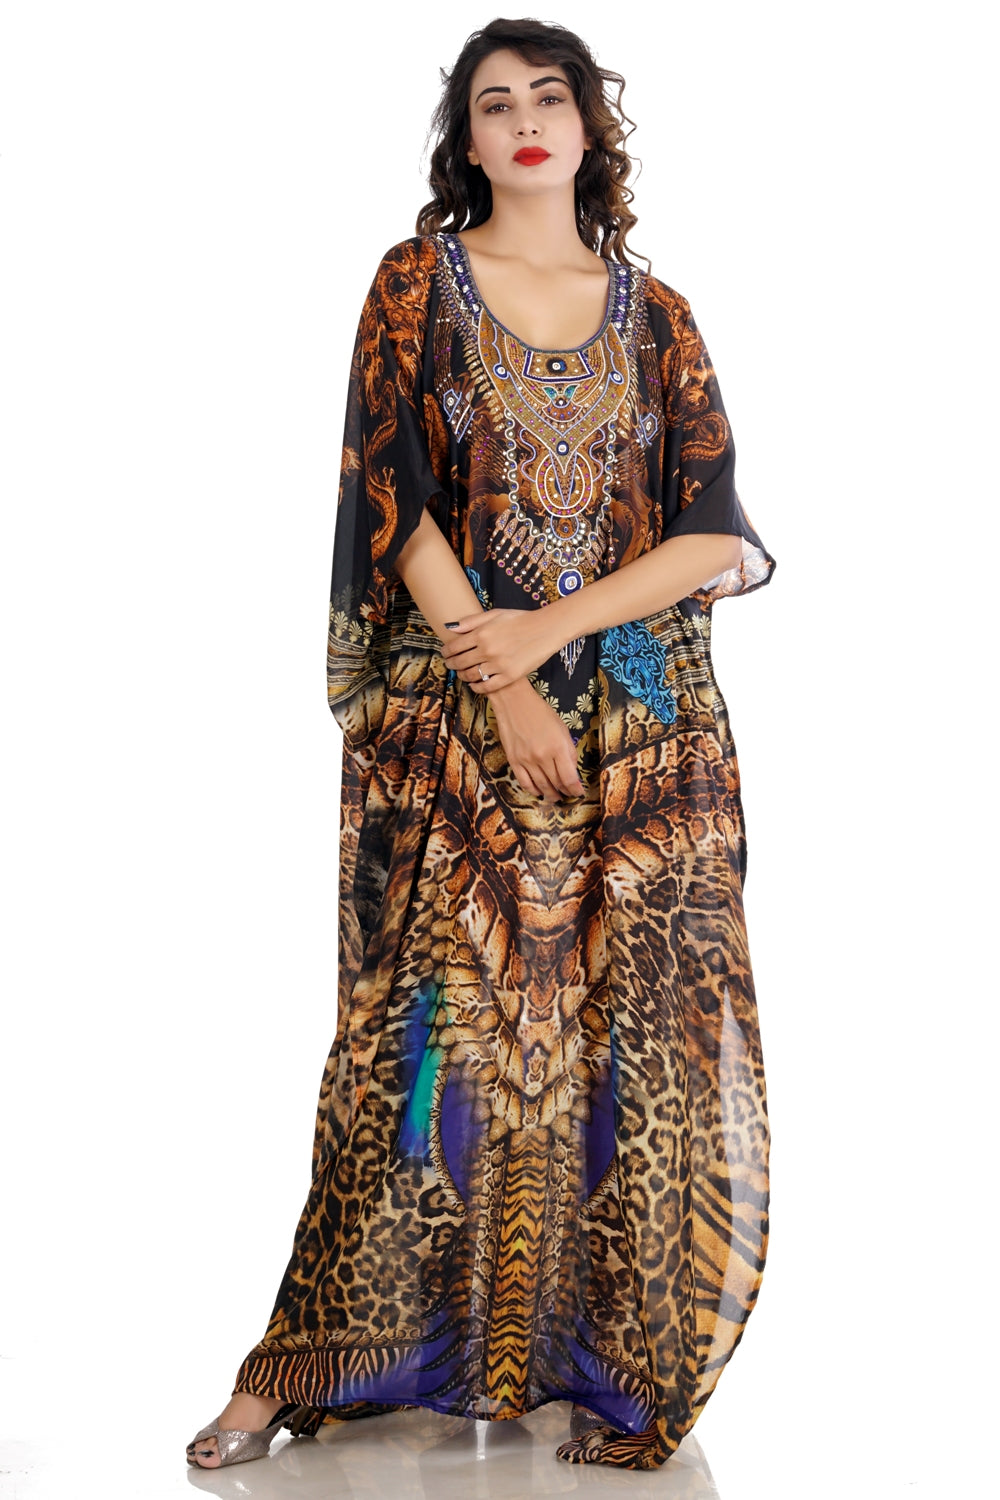 Wildness of Dragon with Other Animals Skin Printed on Elegant Silk Kaftans - Silk kaftan